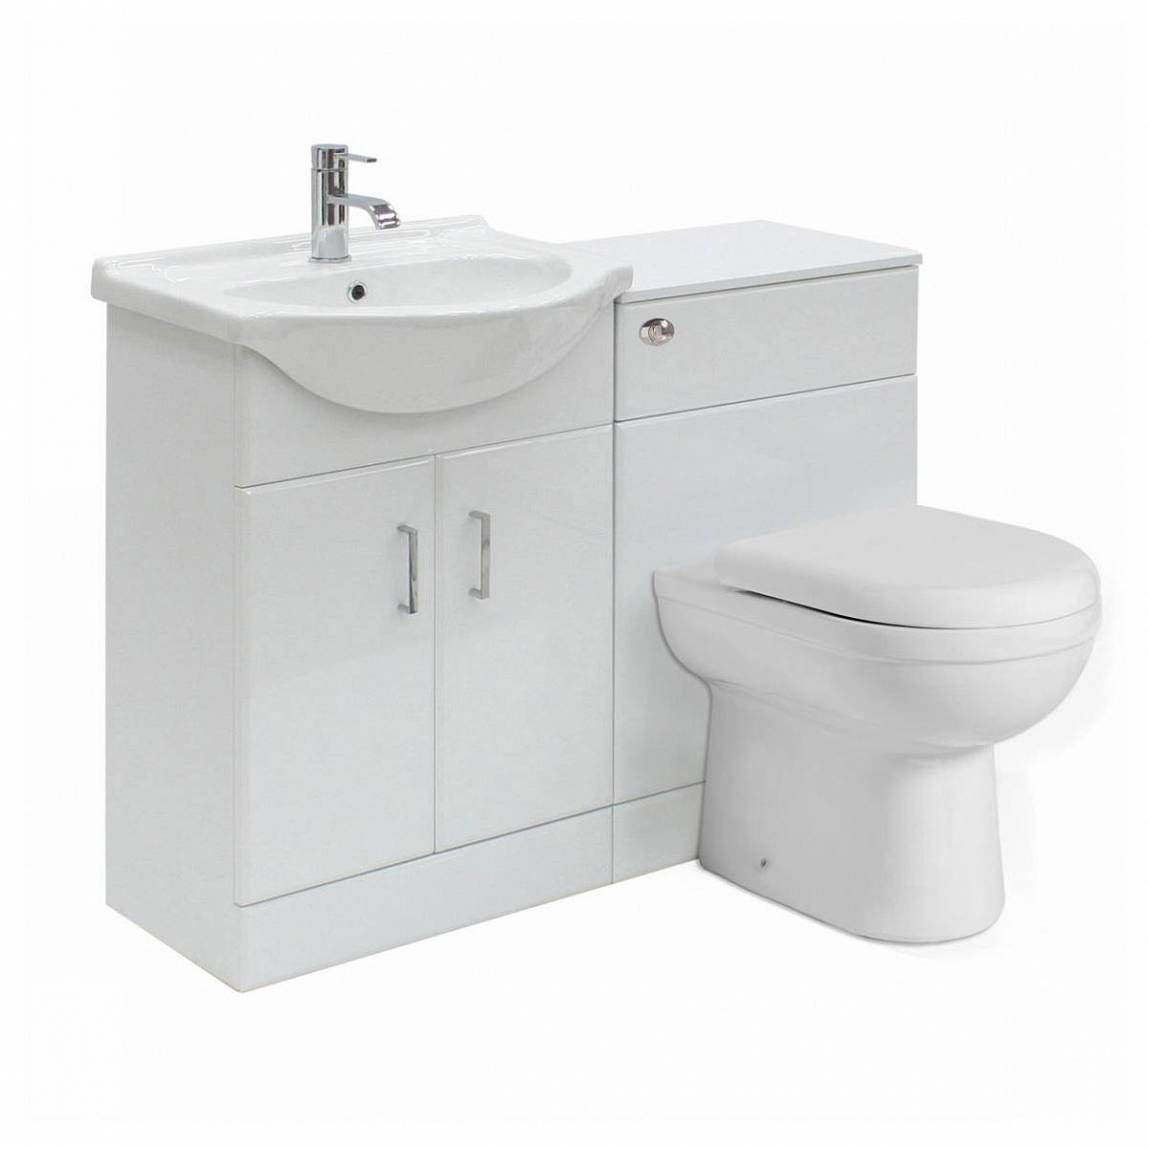 Image of Sienna Autograph White Gloss Combination Vanity Unit - Small